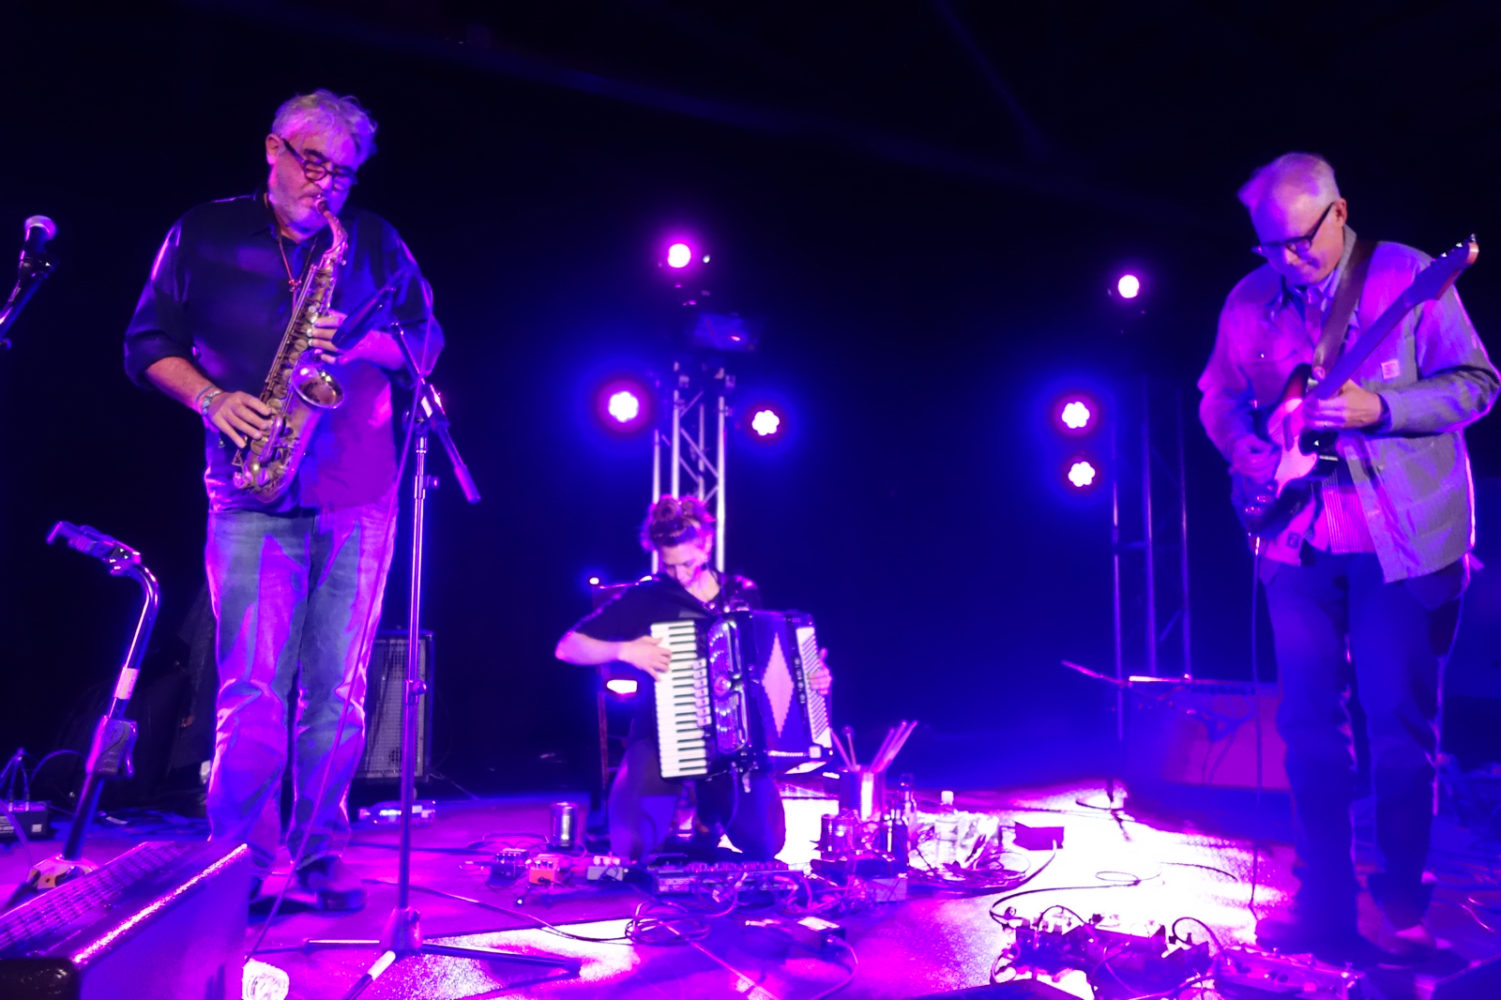 Absînt with David Torn, Tim Berne, Aurora Nealand and Bill Frisell performing at Big Ears in Knoxville, Tennessee 2019